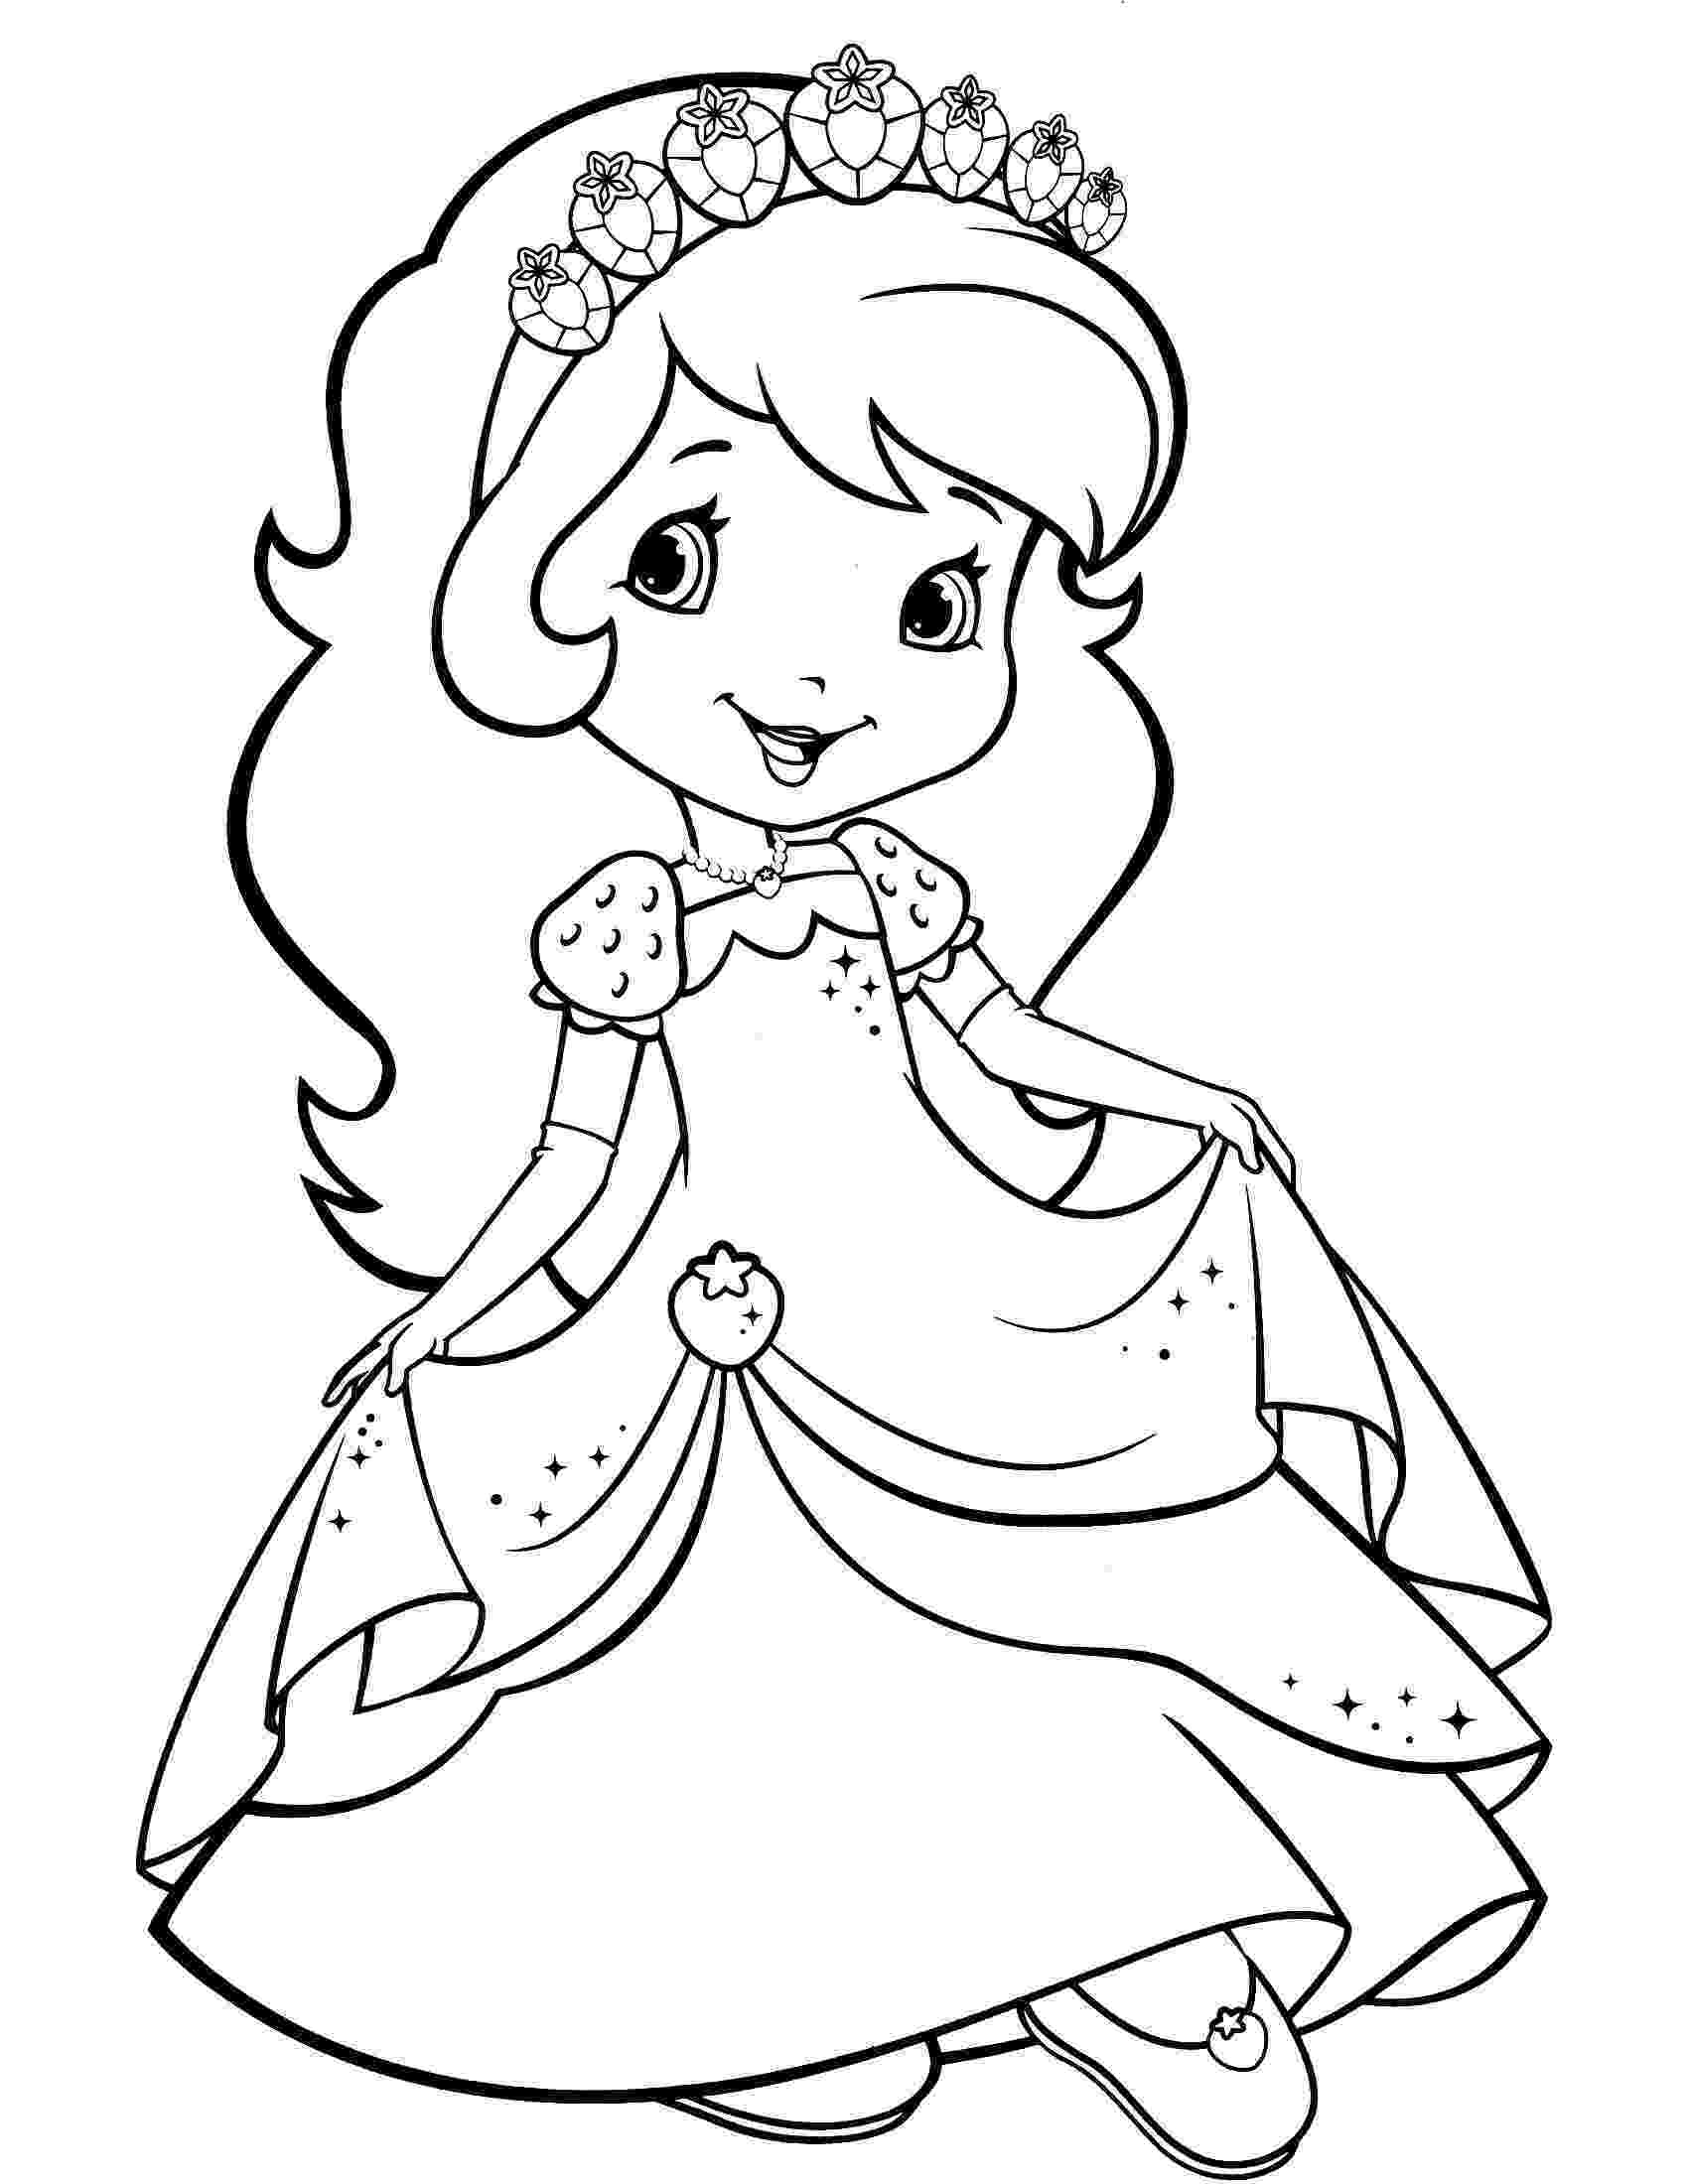 pictures of strawberry shortcake strawberry shortcake coloring page strawberry shortcake of pictures shortcake strawberry